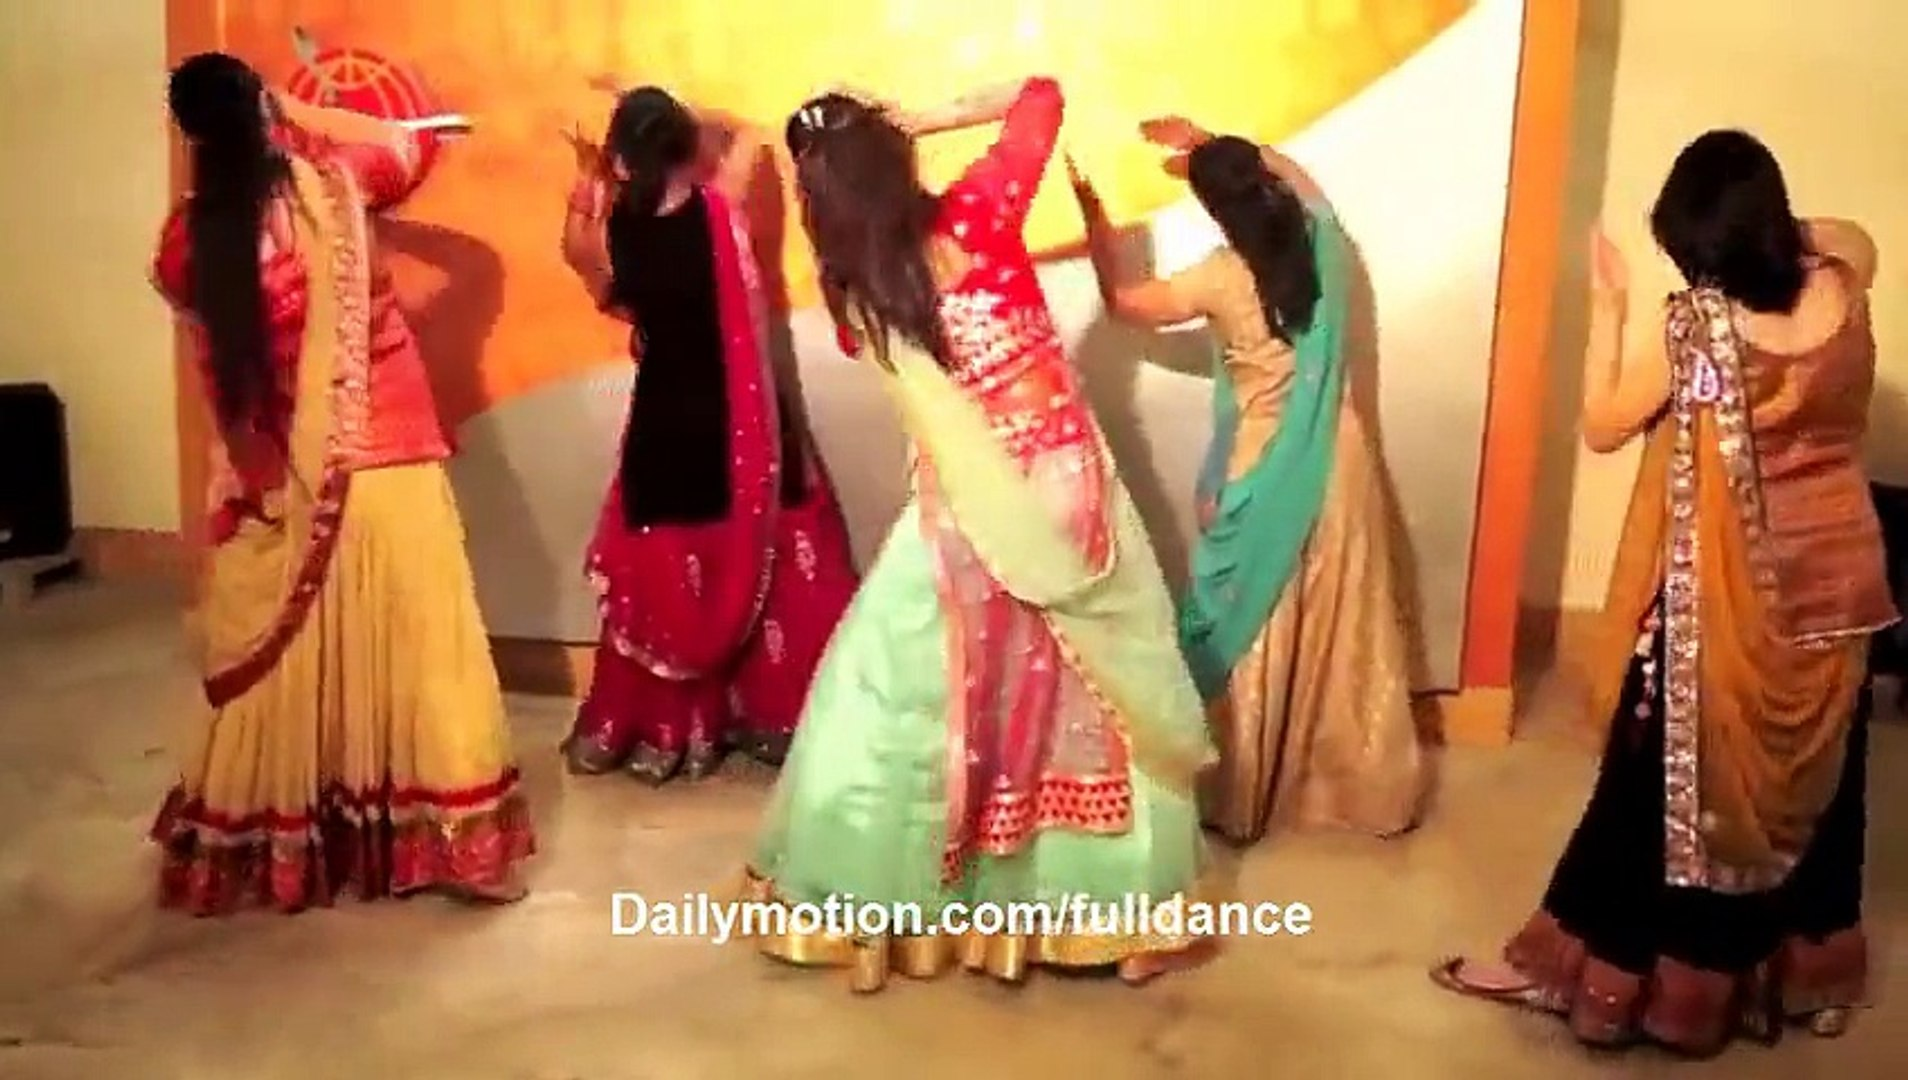 Girl Beautiful Mehndi Dance on Prem Ratan Song 2016 RepostLike 02:17 Girl Beautiful Mehndi Dance on